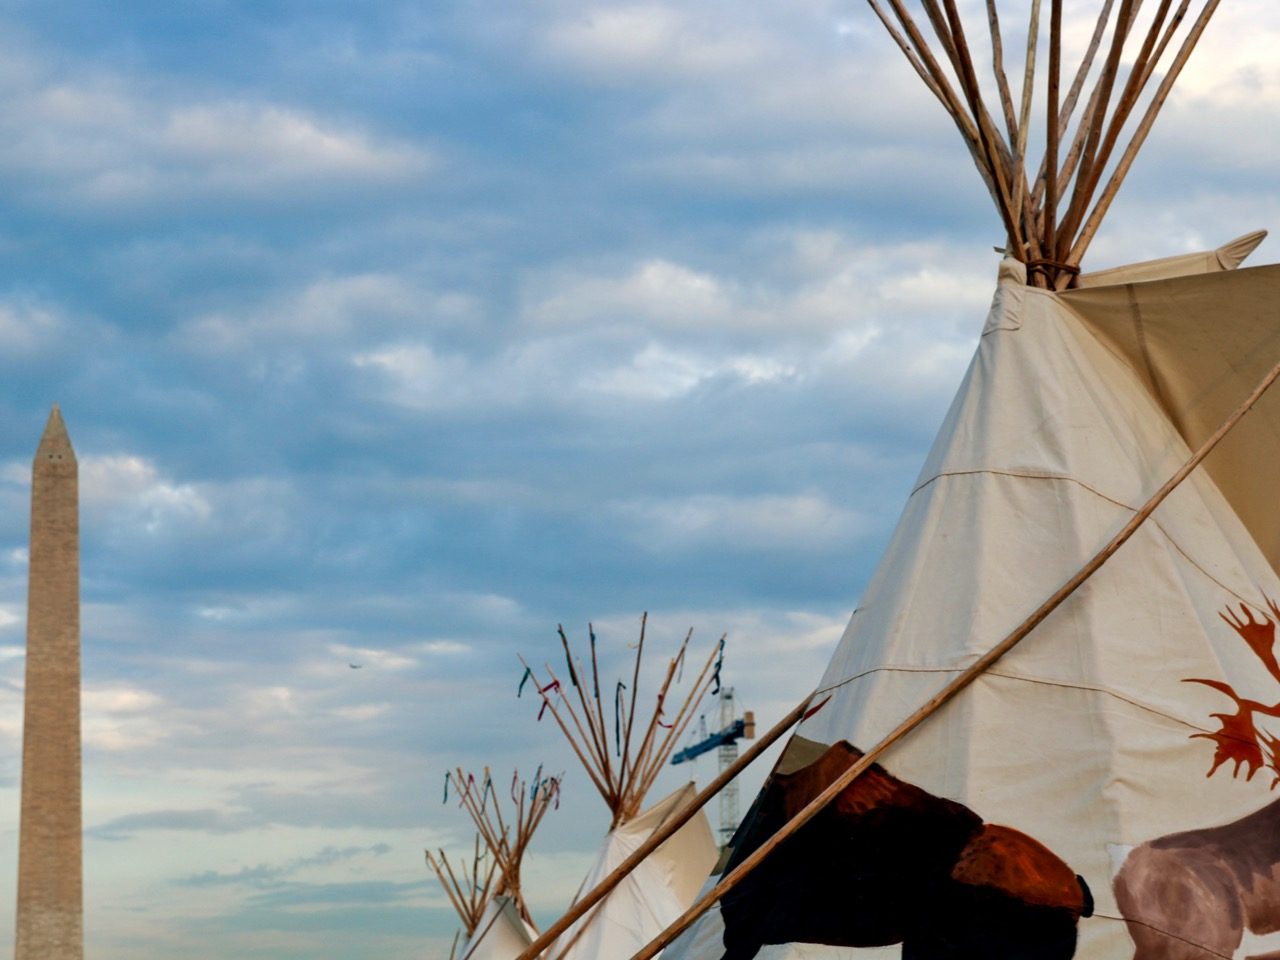 Zoltan Grossman: Cowboys and Indians unite across the country